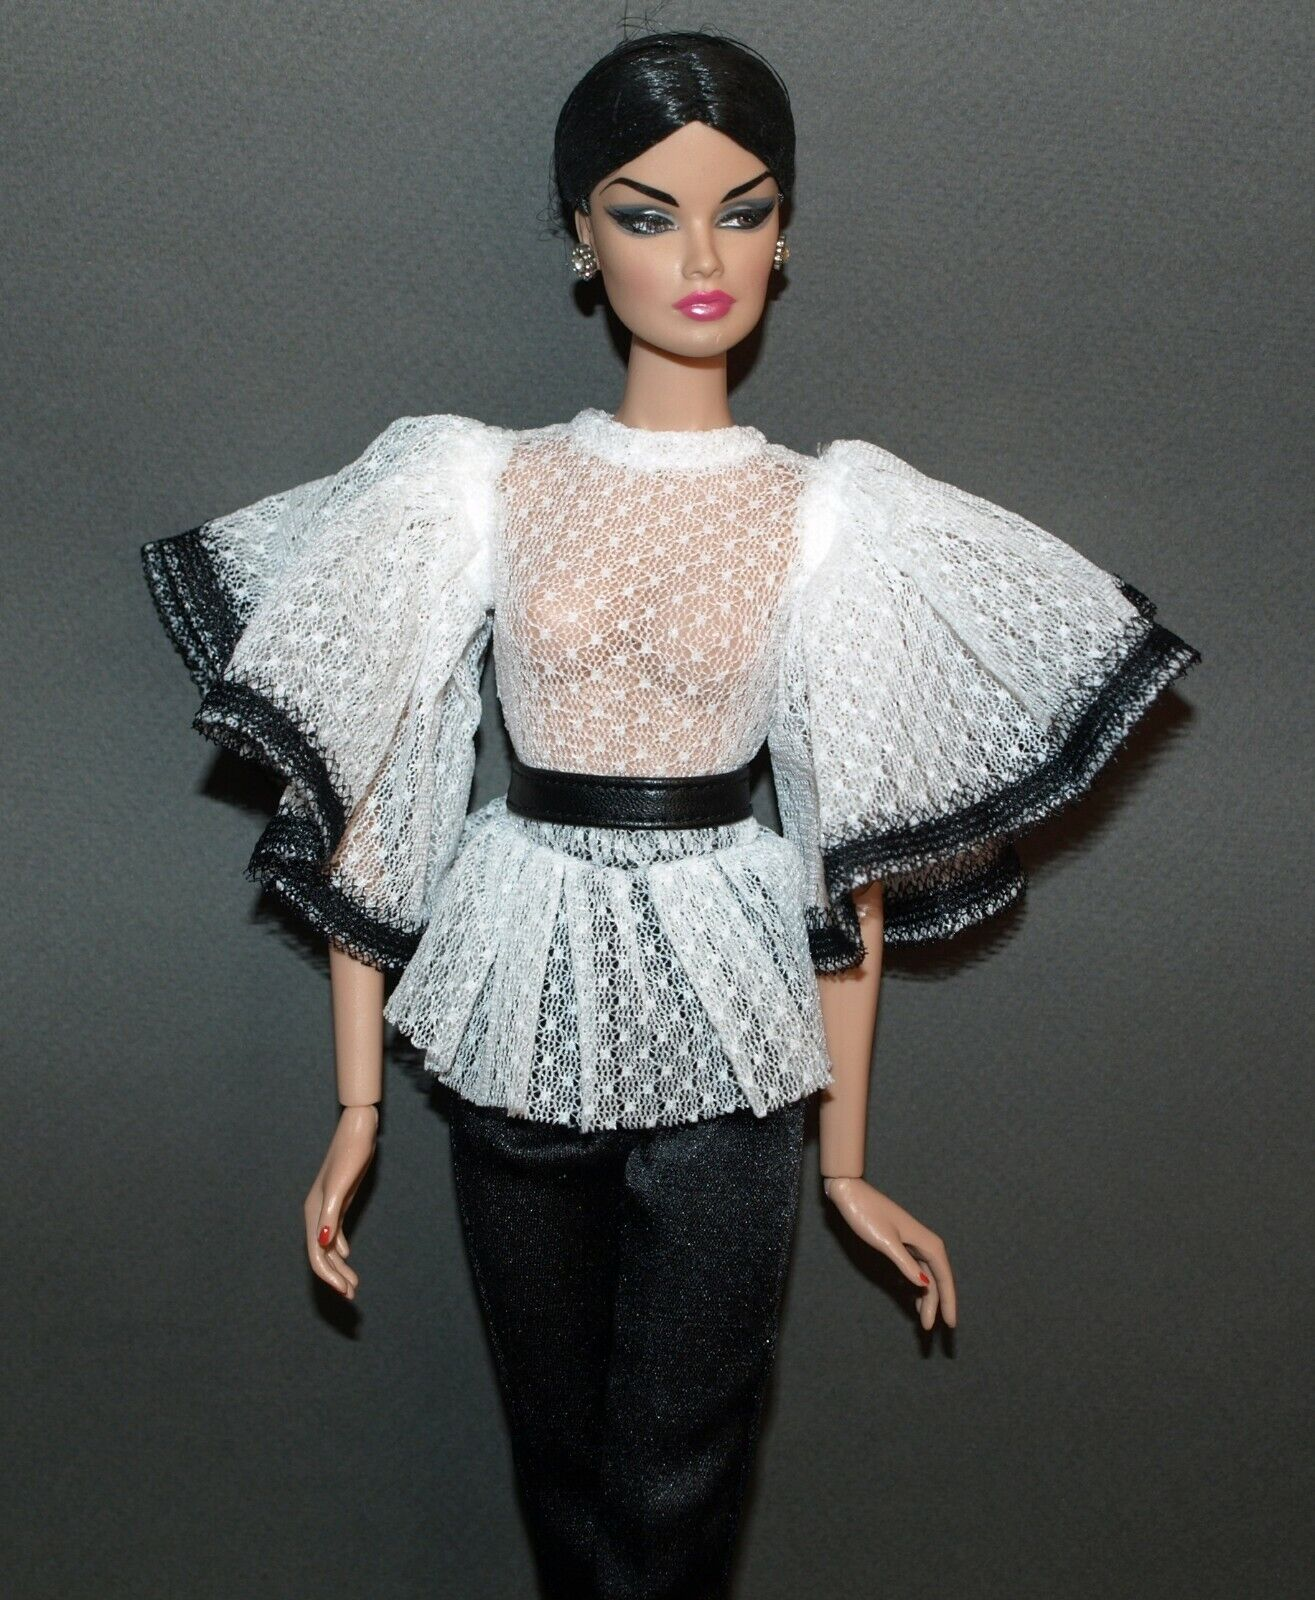 *KAREN Exclusive* outfit for Fashion Royalty FR2, Poppy Parker, Barbie - 161